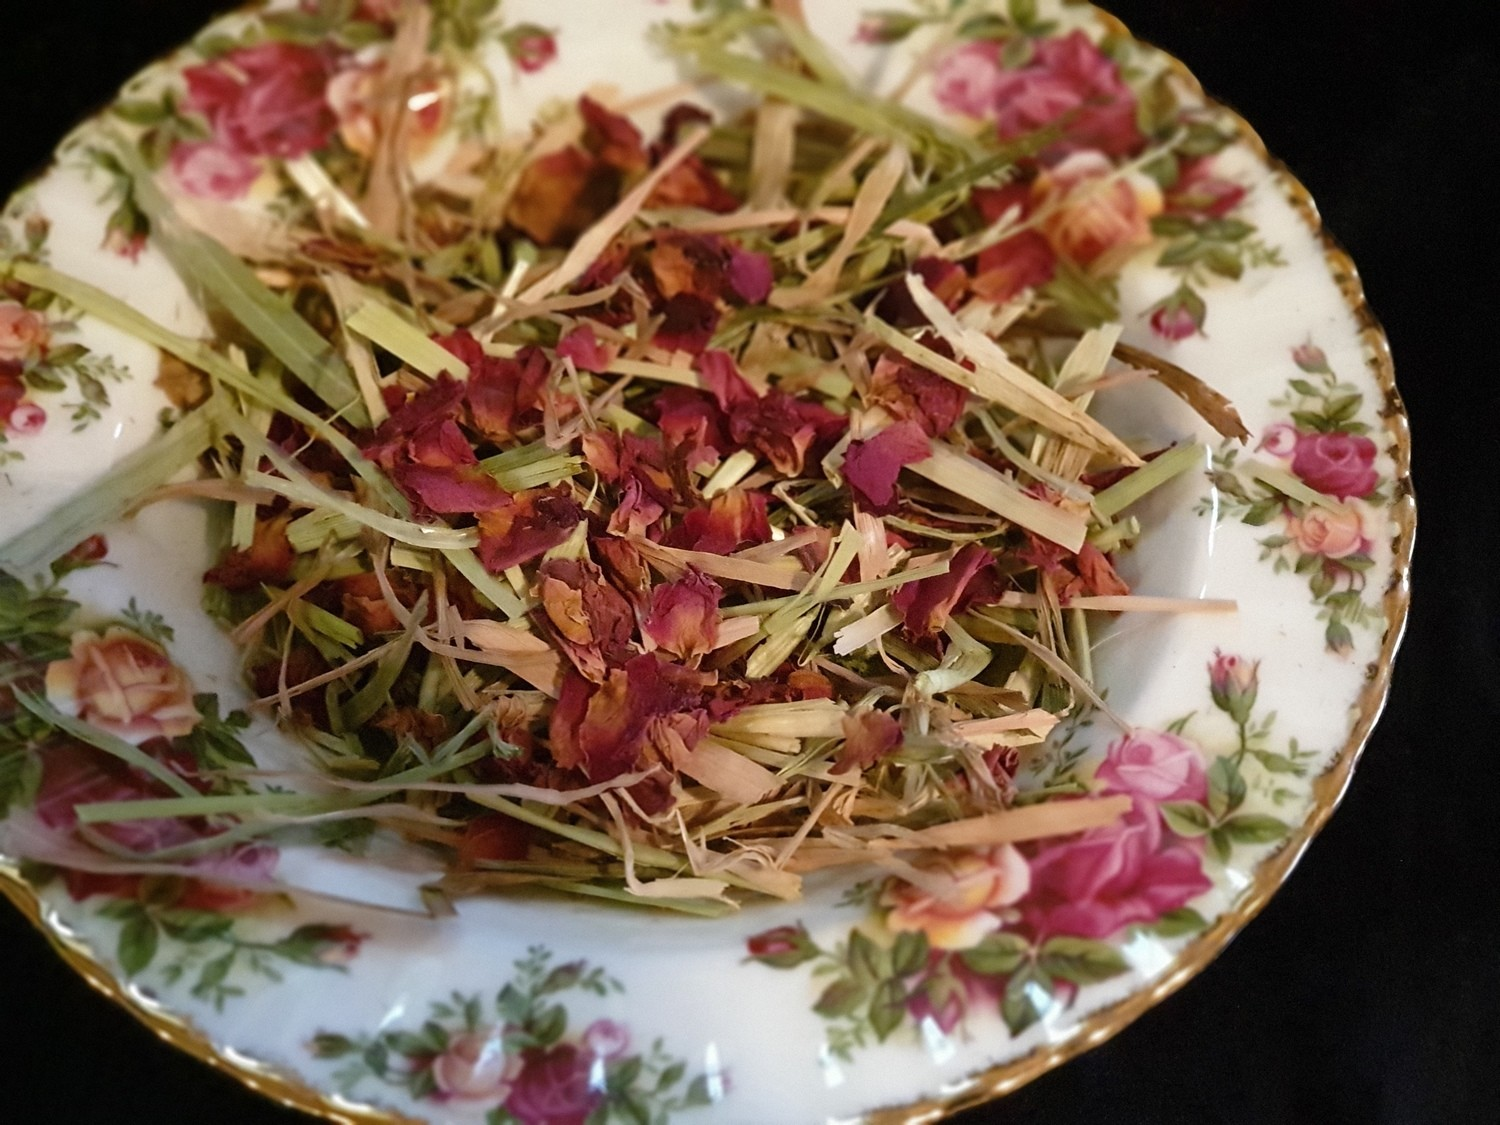 Show grade oaten hay chaff with organic pink rose petals